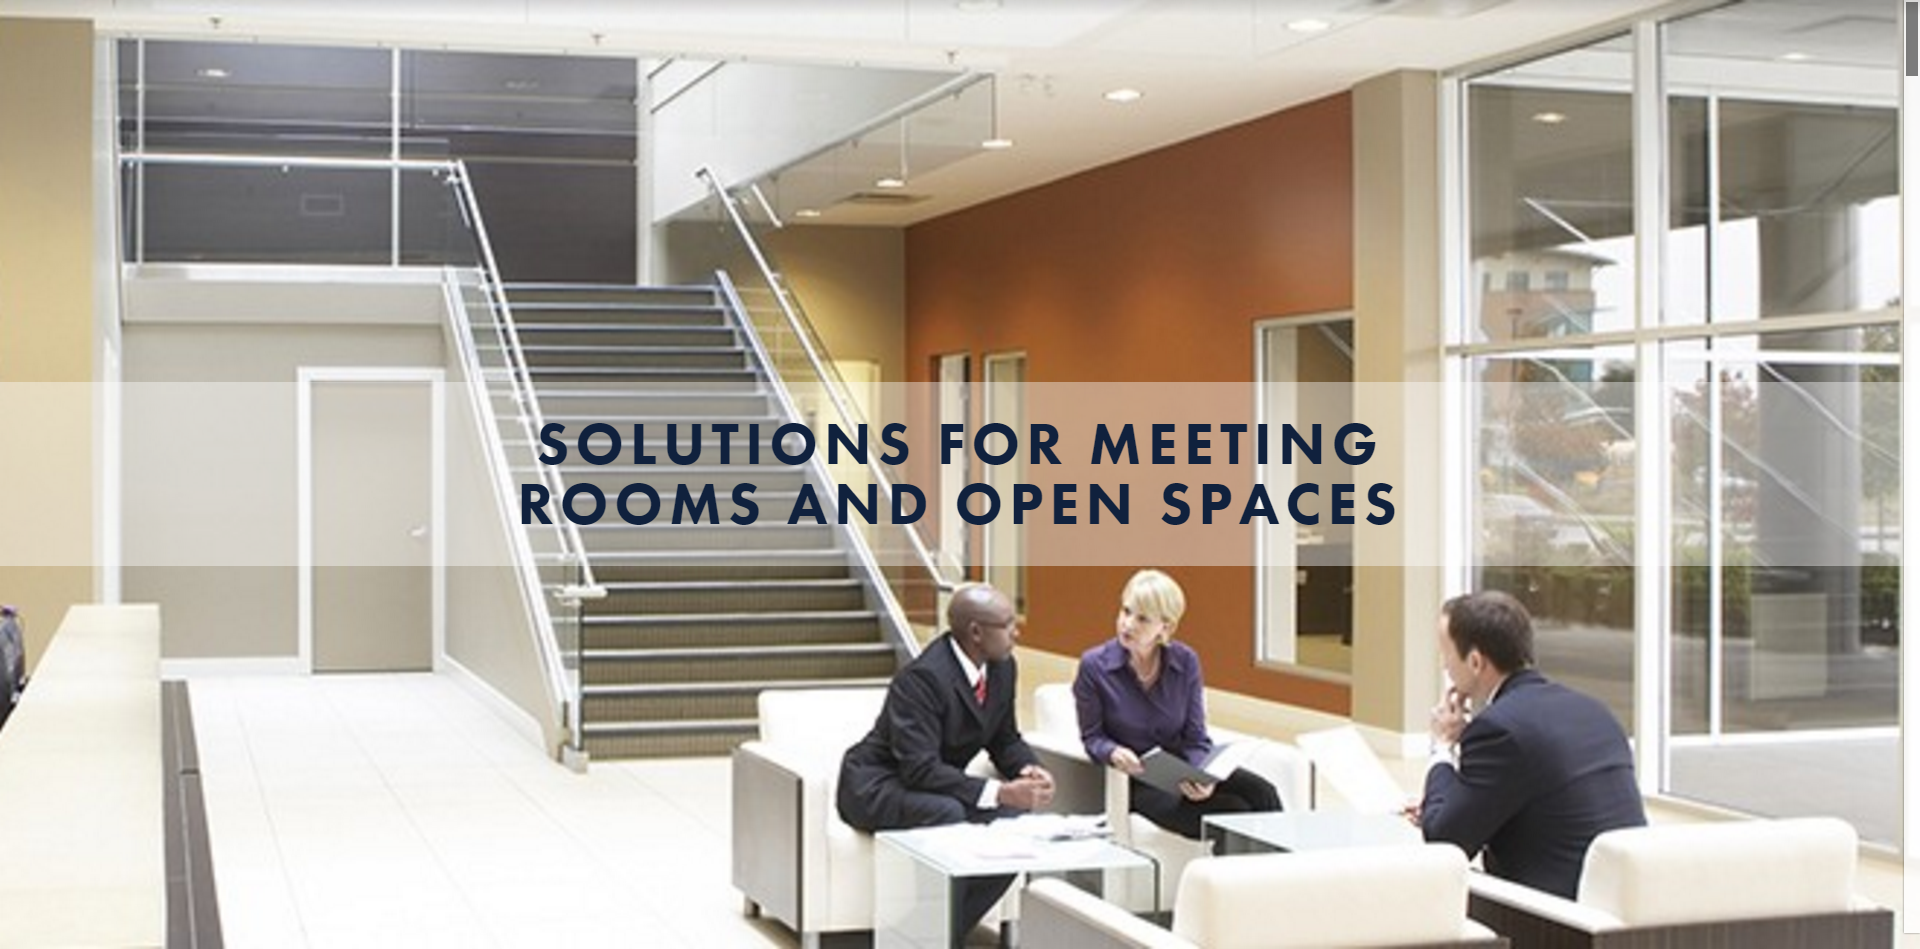 Network Products, Inc. provides solutions for meeting rooms & open spaces